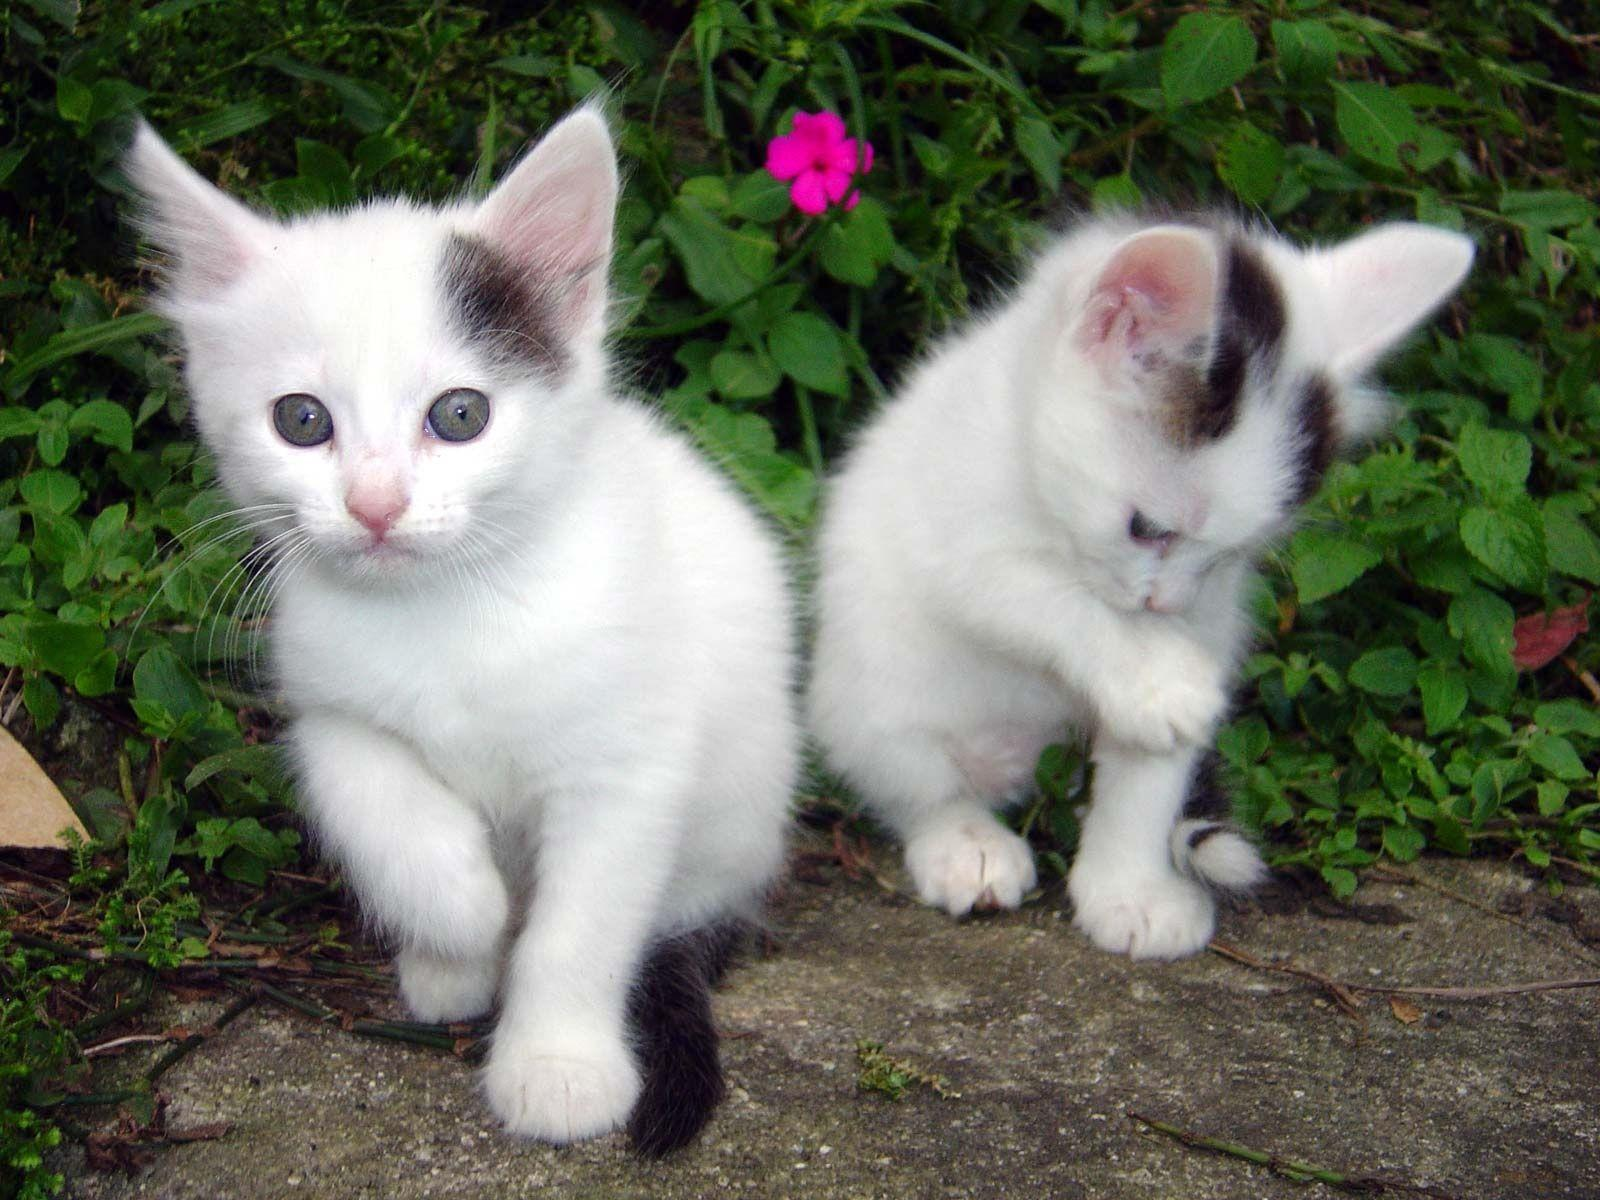 Adorable cat photos hd, Cute cats pictures